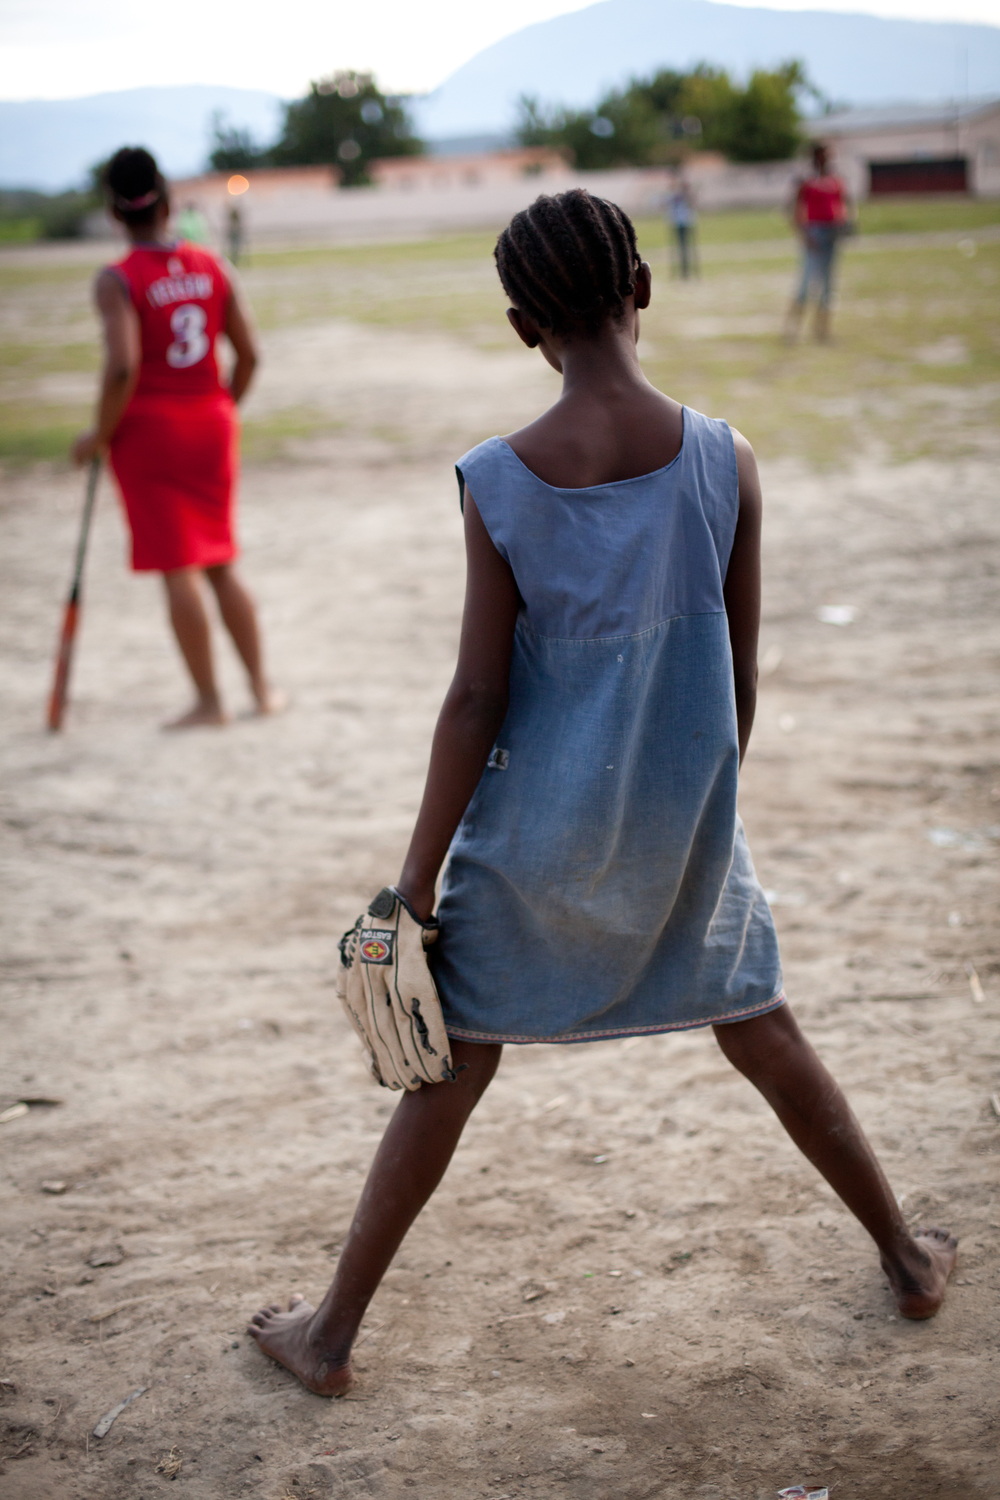 ​A girls' softball team, with players from ages 12 to 23, plays on a makeshift diamond in a sugar cane workers' shantytown in Barahona, Dominican Republic, near the border of Haiti.